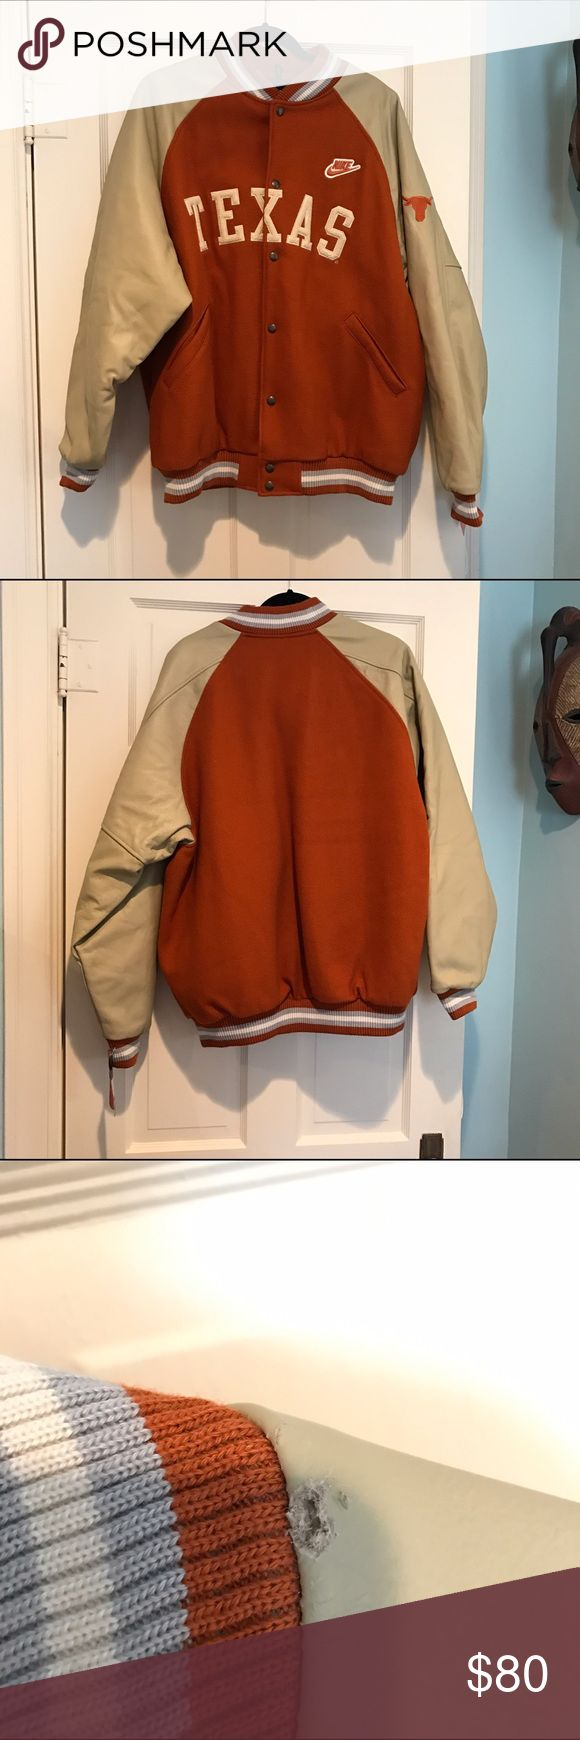 NWT Nike Texas Letterman Jacket Men's Large. Leather sleeves with cloth body. Quilted inside that I'm sure is warm. Longhorn patch on left arm. Slight damage at the neckline as seen in the third picture. Nike Jackets & Coats Bomber & Varsity